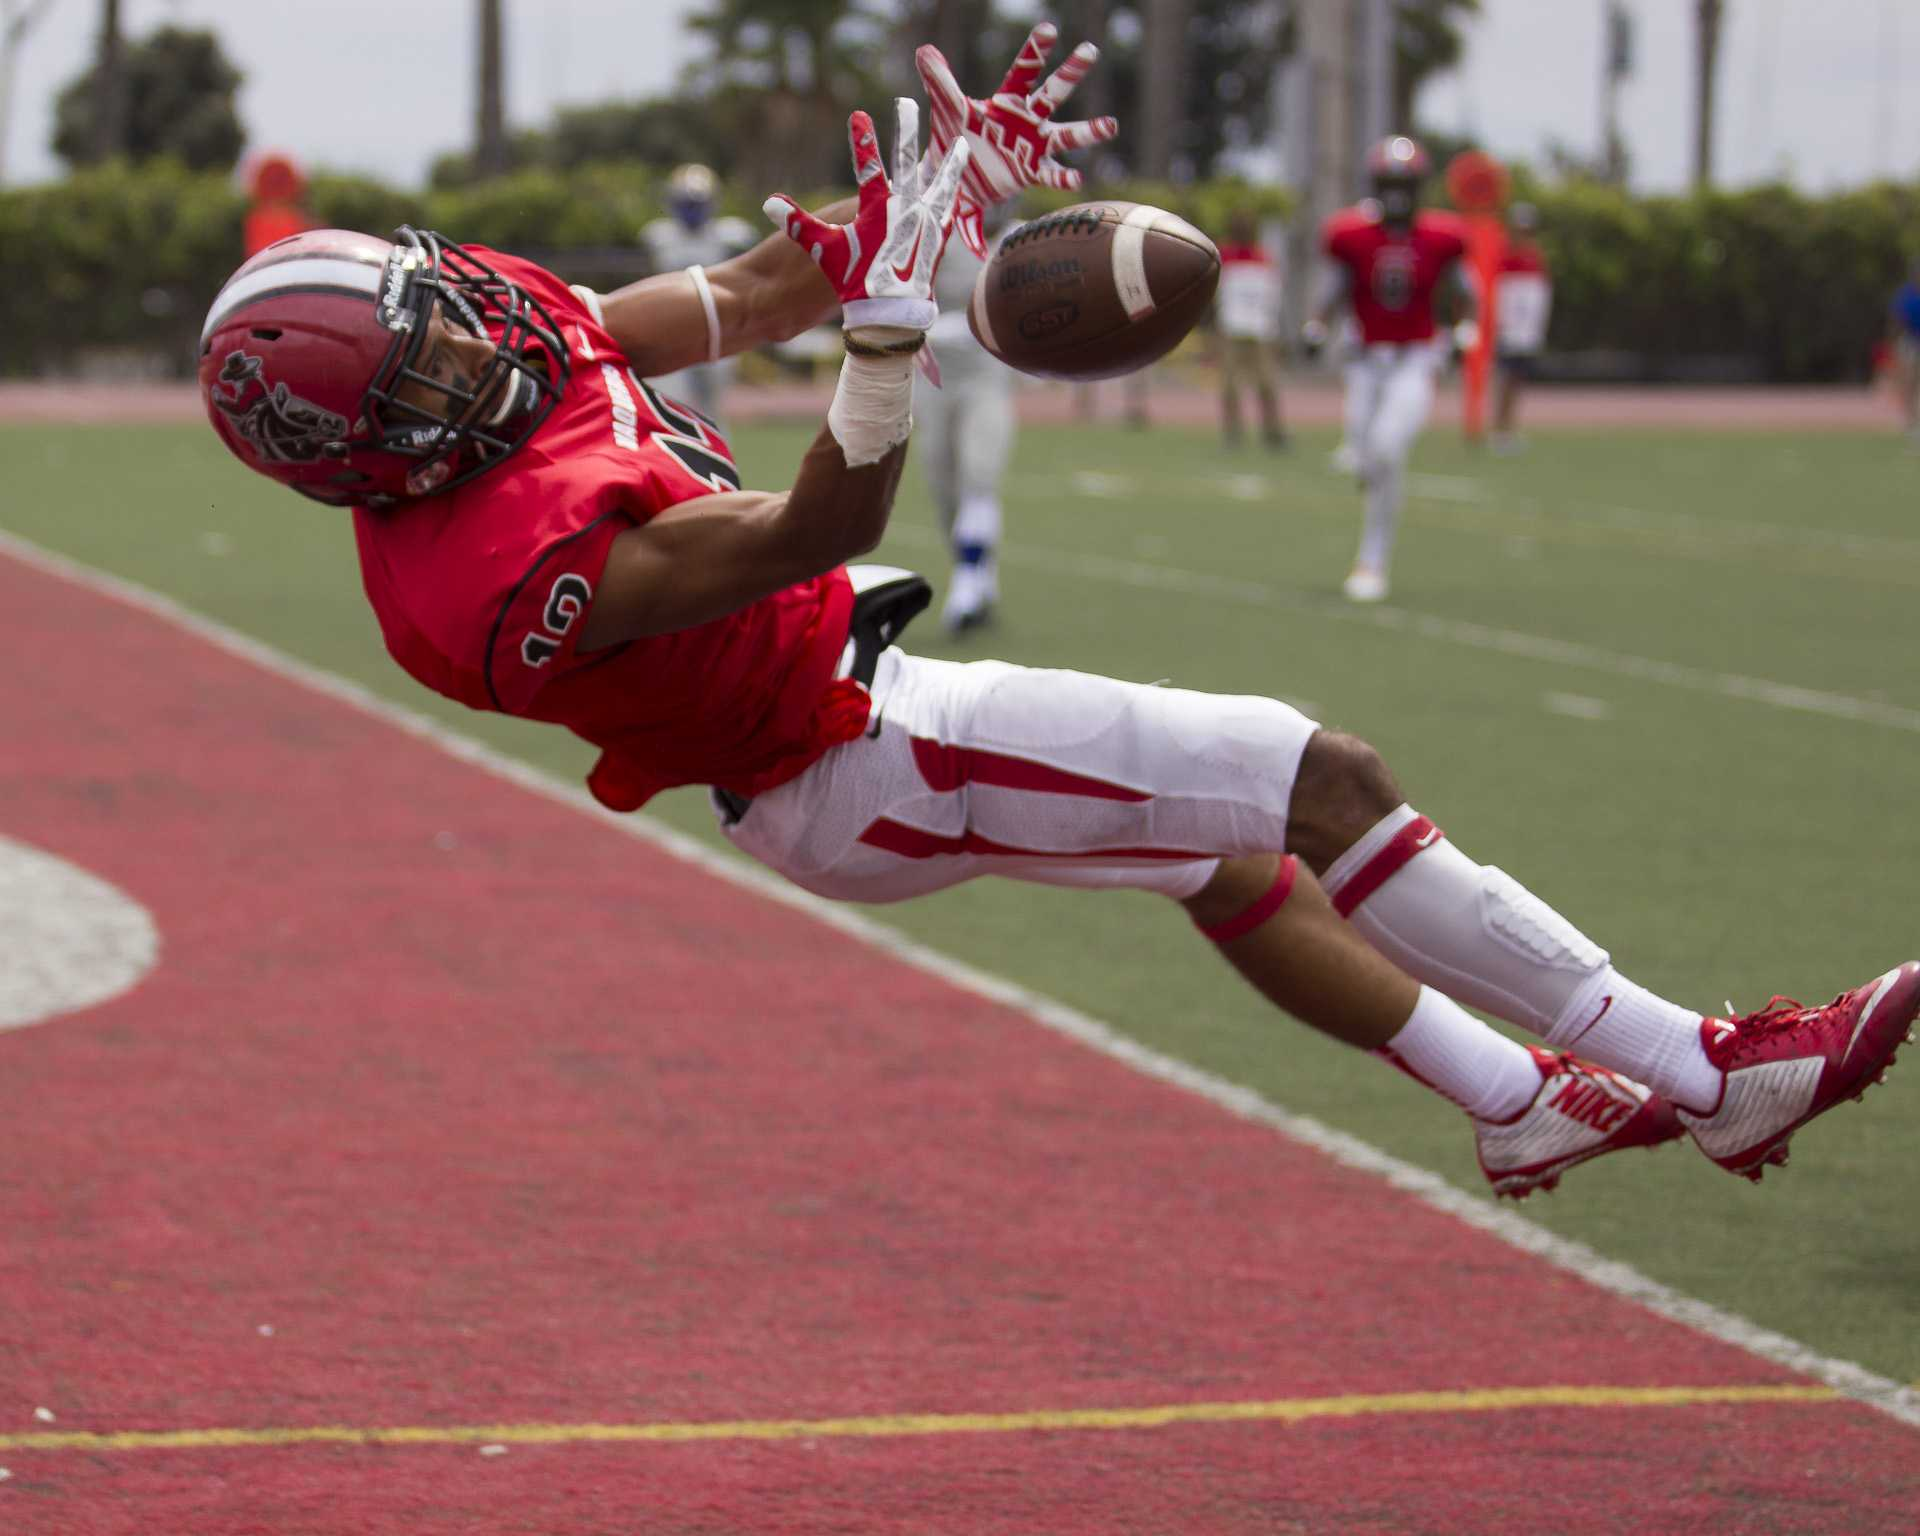 Receiver Elijah Cunningham (No. 13) of City College attempts to make a catch in the end zone Saturday afternoon Sept. 12 at La Playa Stadium. City College beat Hancock, 21-20.